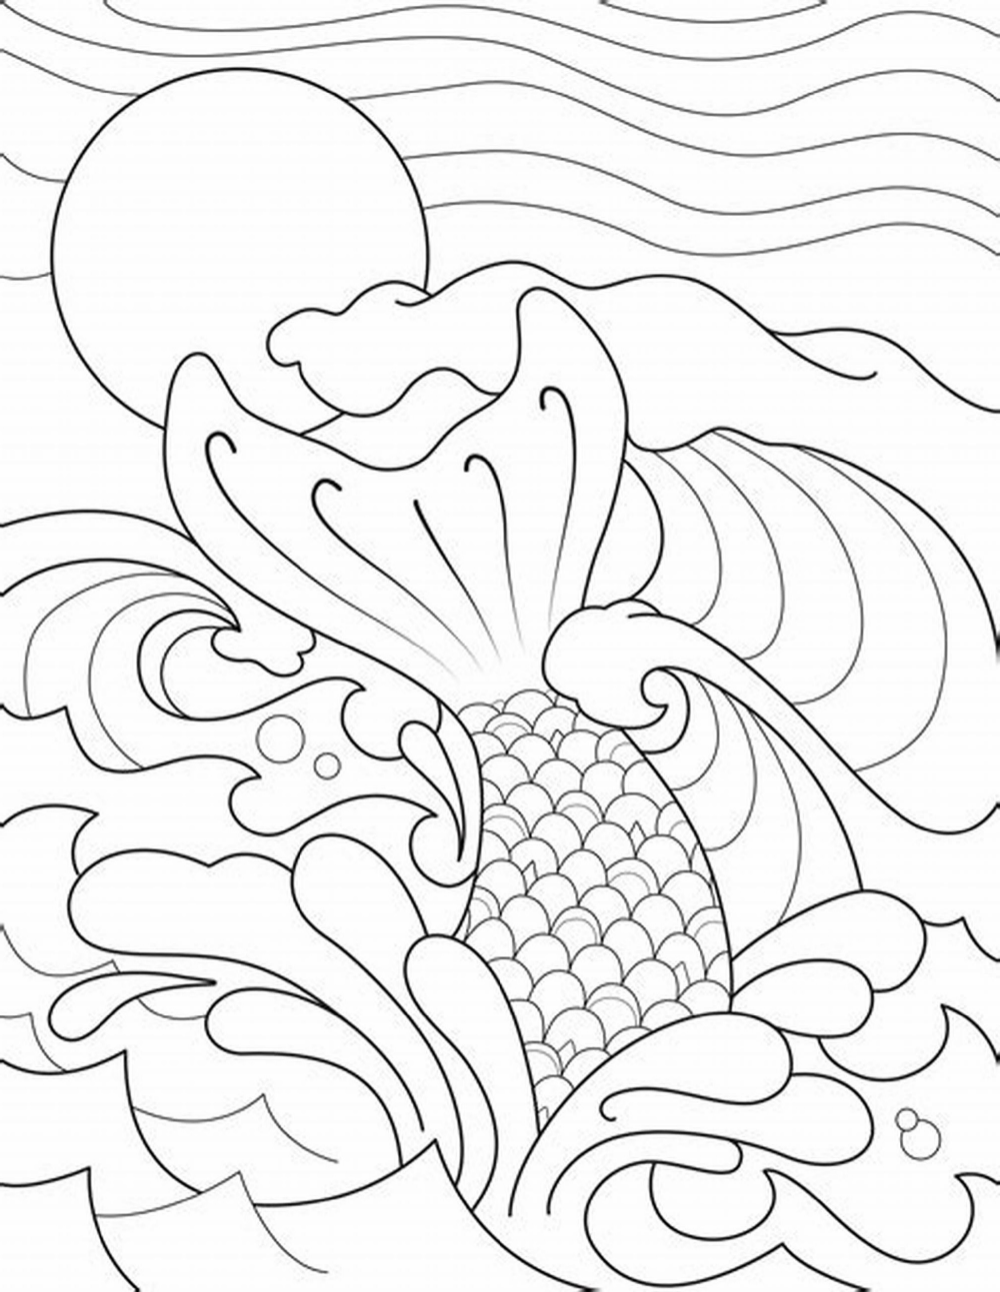 Mermaid Tail Coloring Page For Adults K5 Worksheets Mermaid Coloring Pages Halloween Coloring Pages Printable Free Halloween Coloring Pages